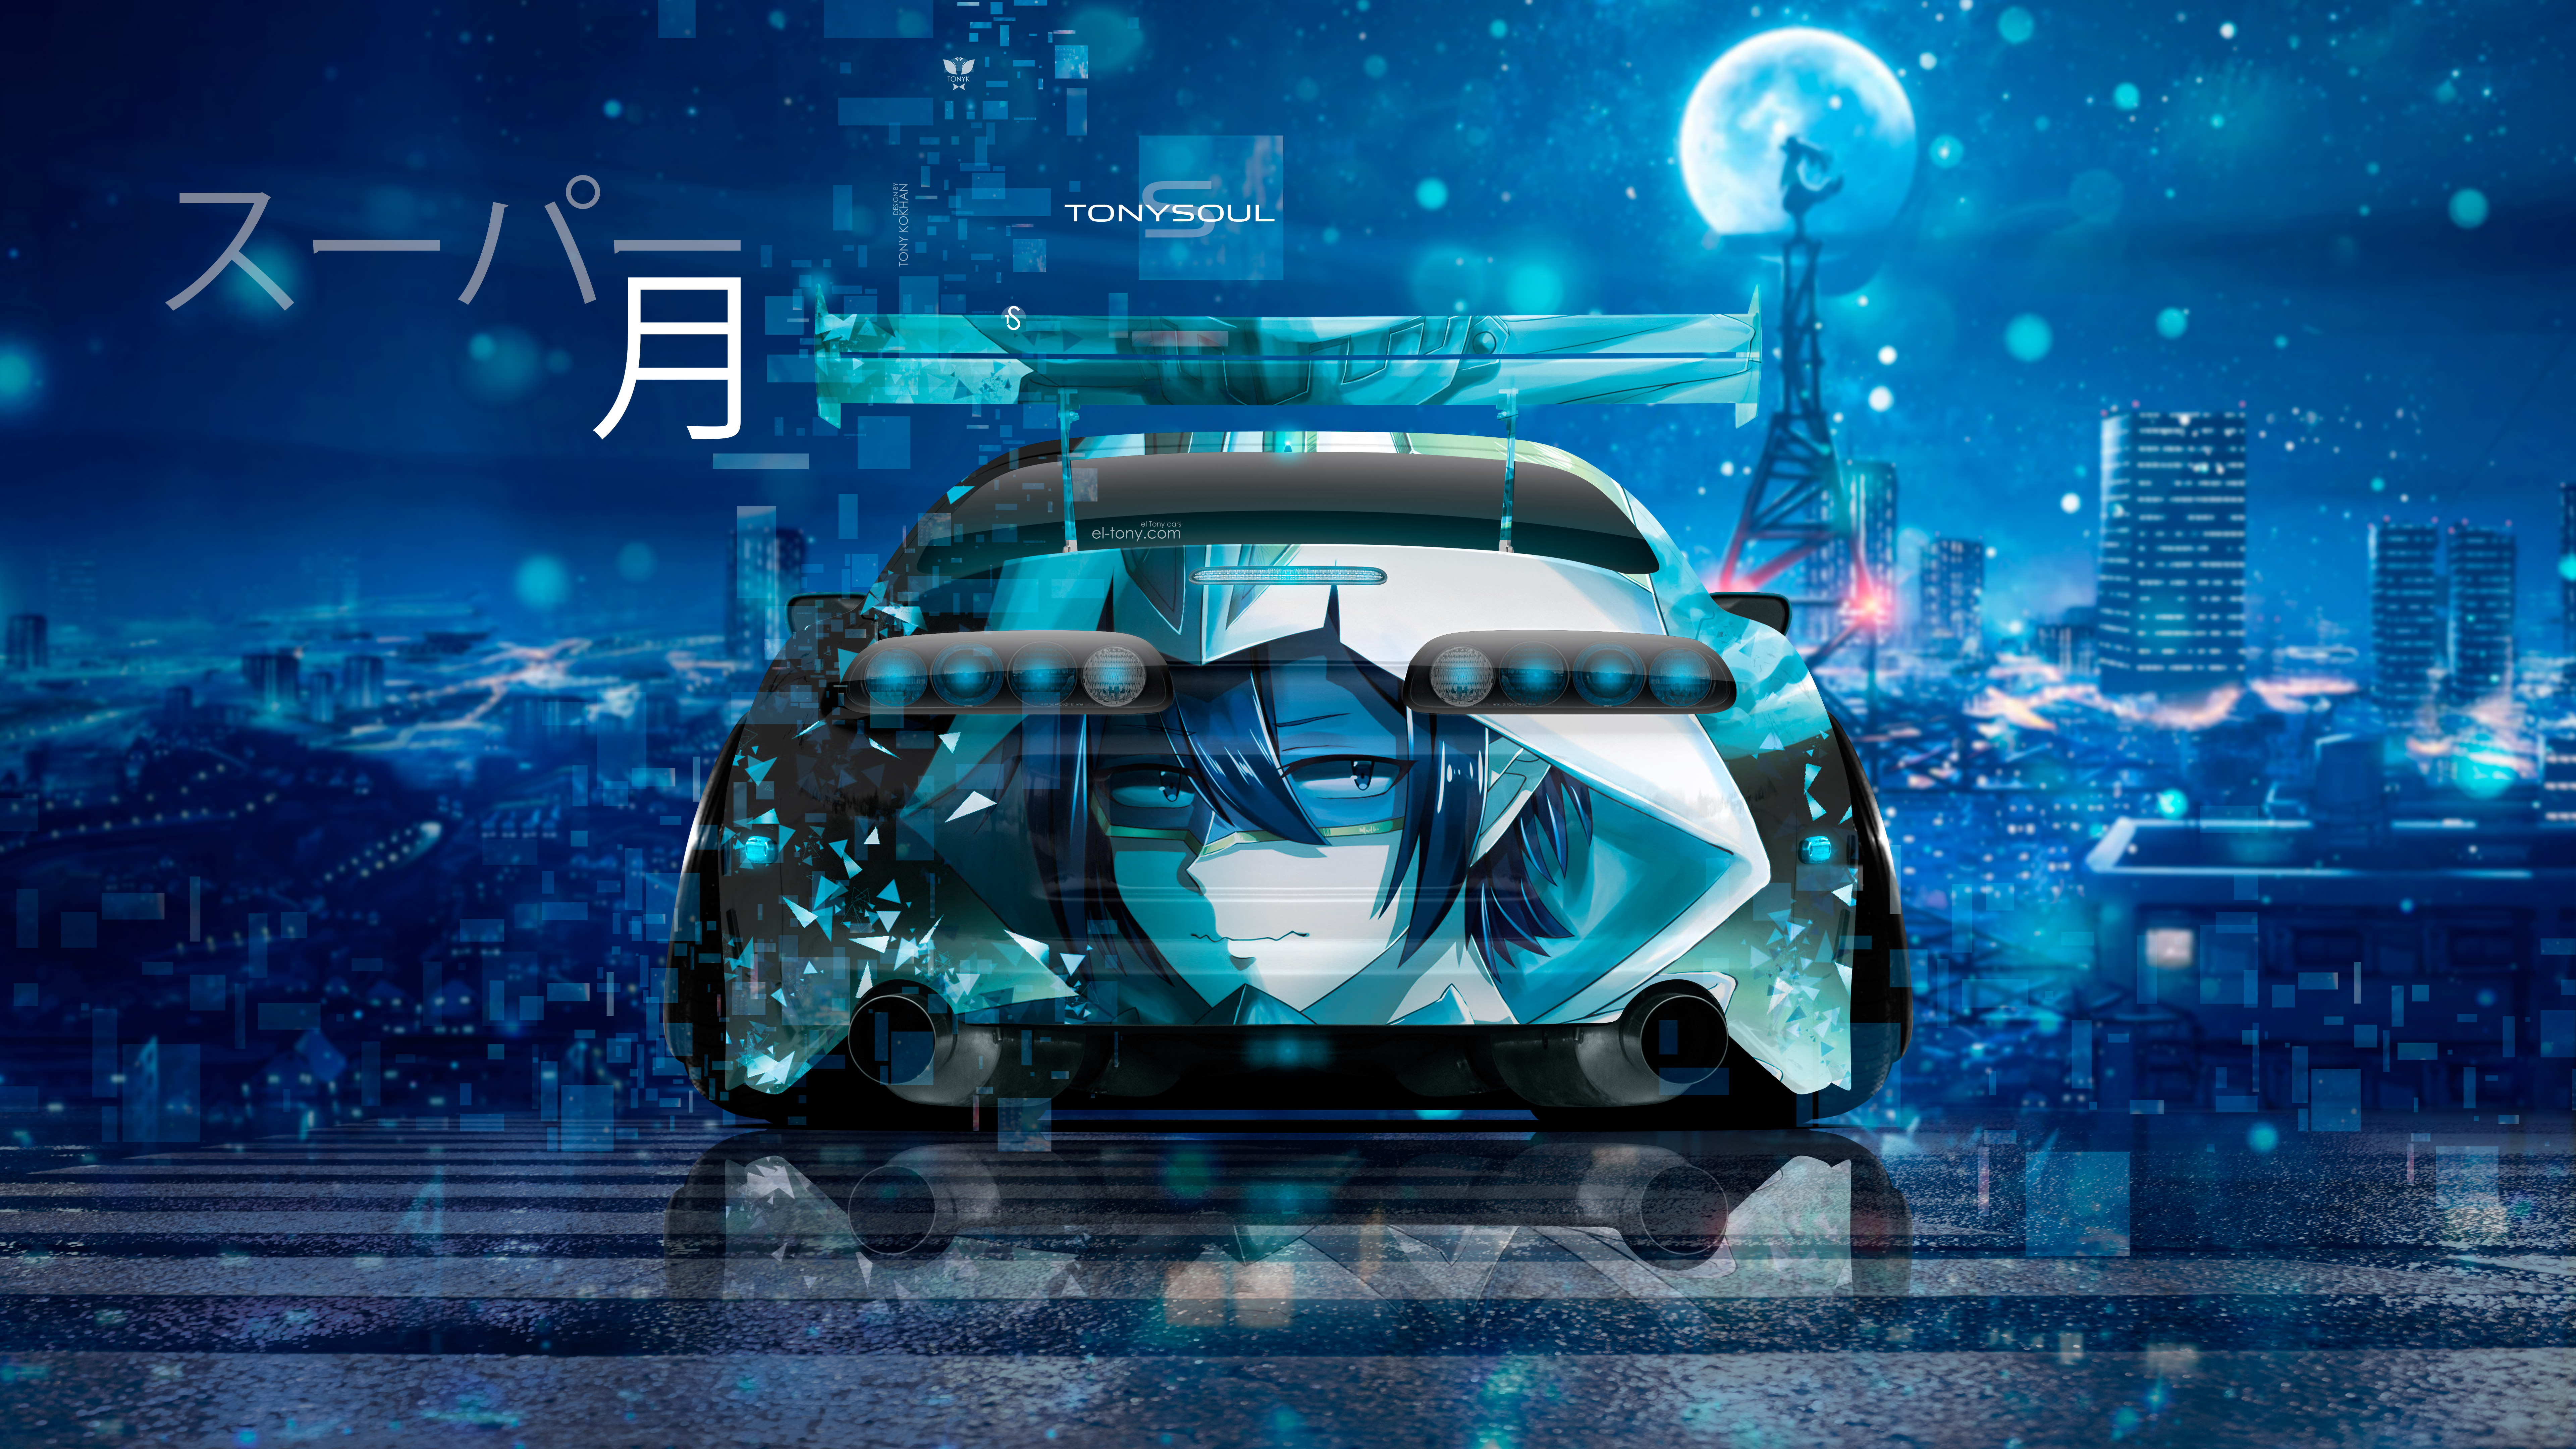 Toyota-Supra-JZA80-JDM-Tuning-Back-Anime-Boy-Girl-Super-Moon-TonySoul-Night-City-Art-Car-2019-Blue-Azure-Black-Colors-8K-Wallpapers-design-by-Tony-Kokhan-www.el-tony.com-image